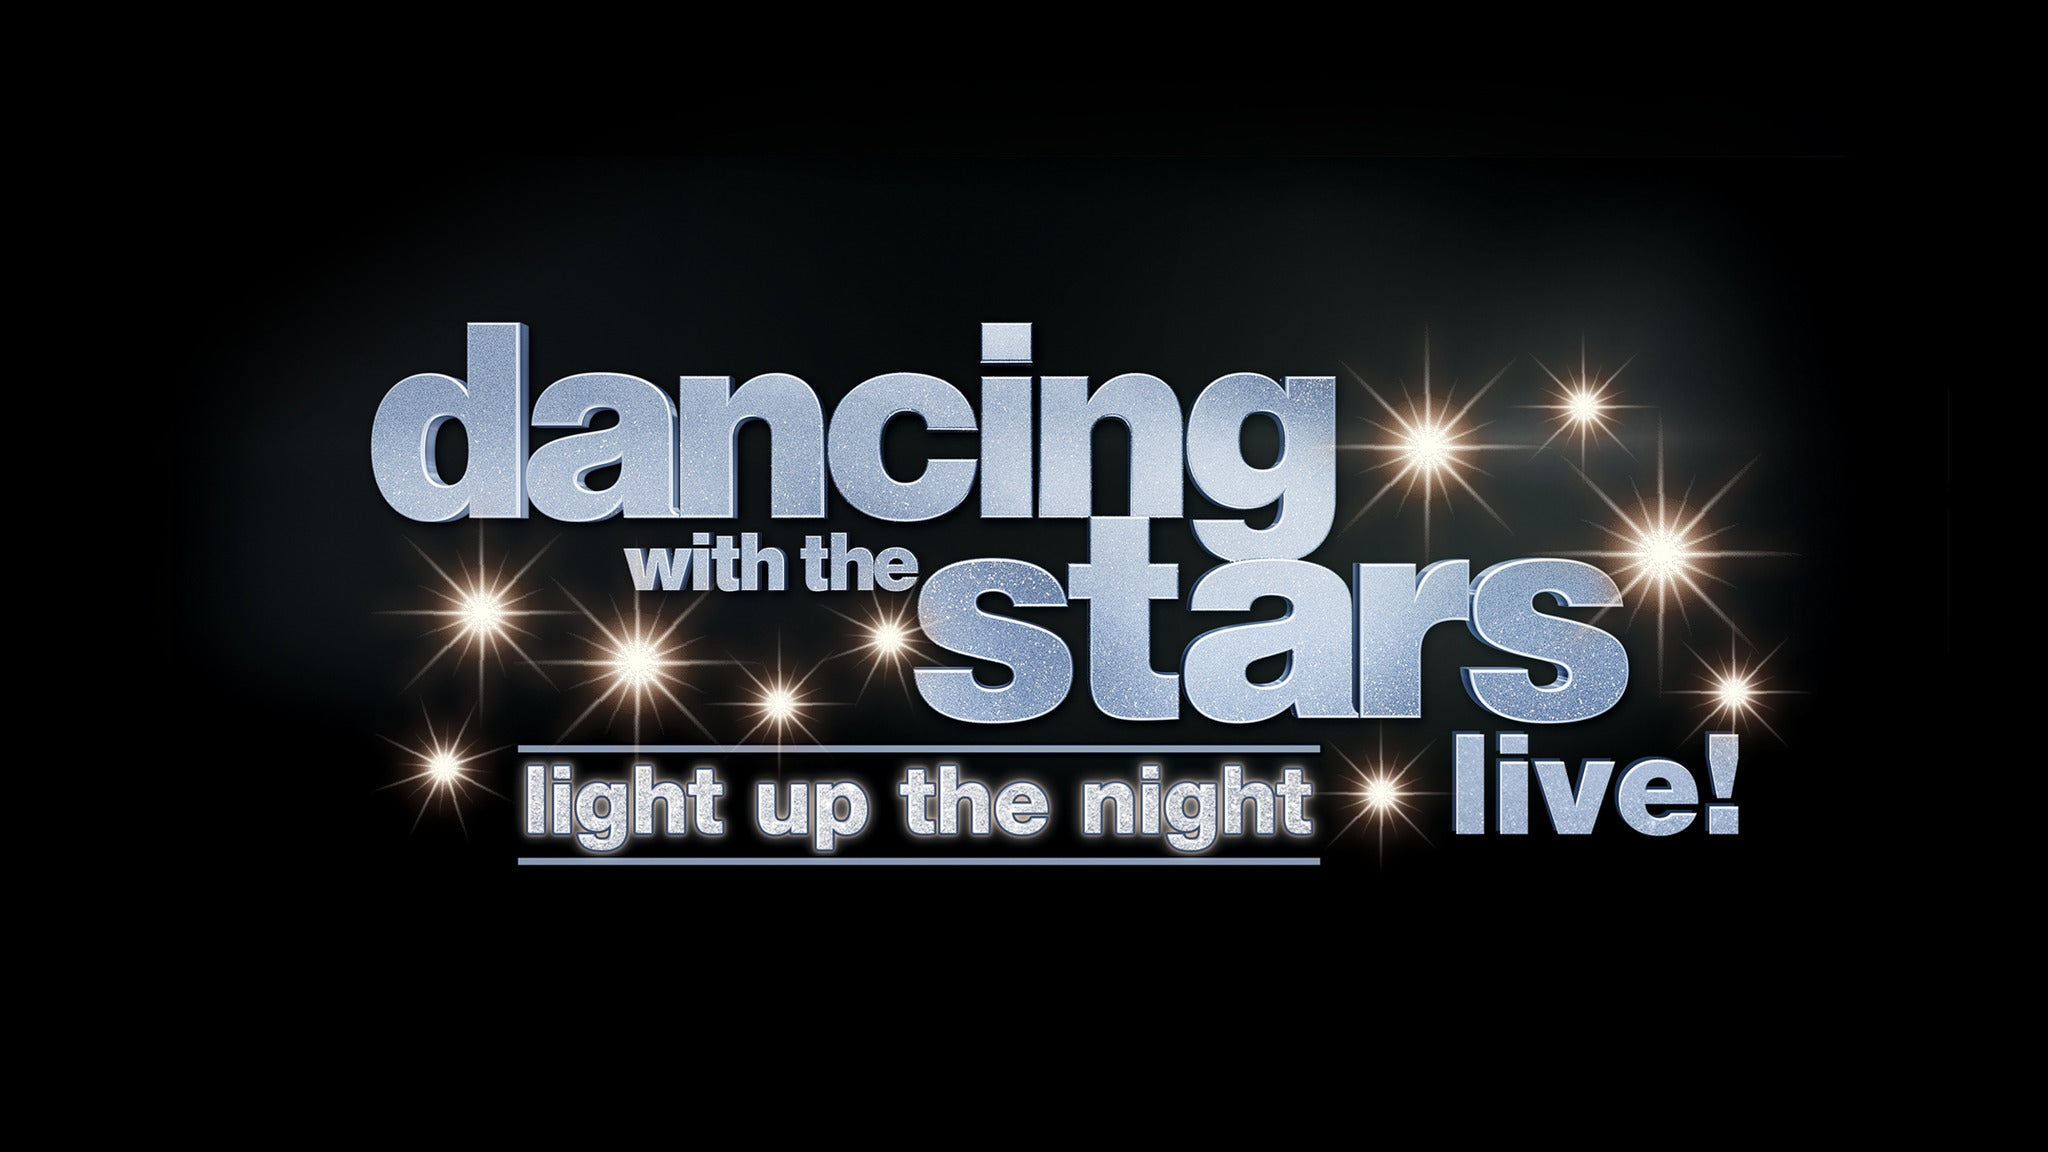 Dancing with the Stars - Meet & Greet Packages at Van Wezel